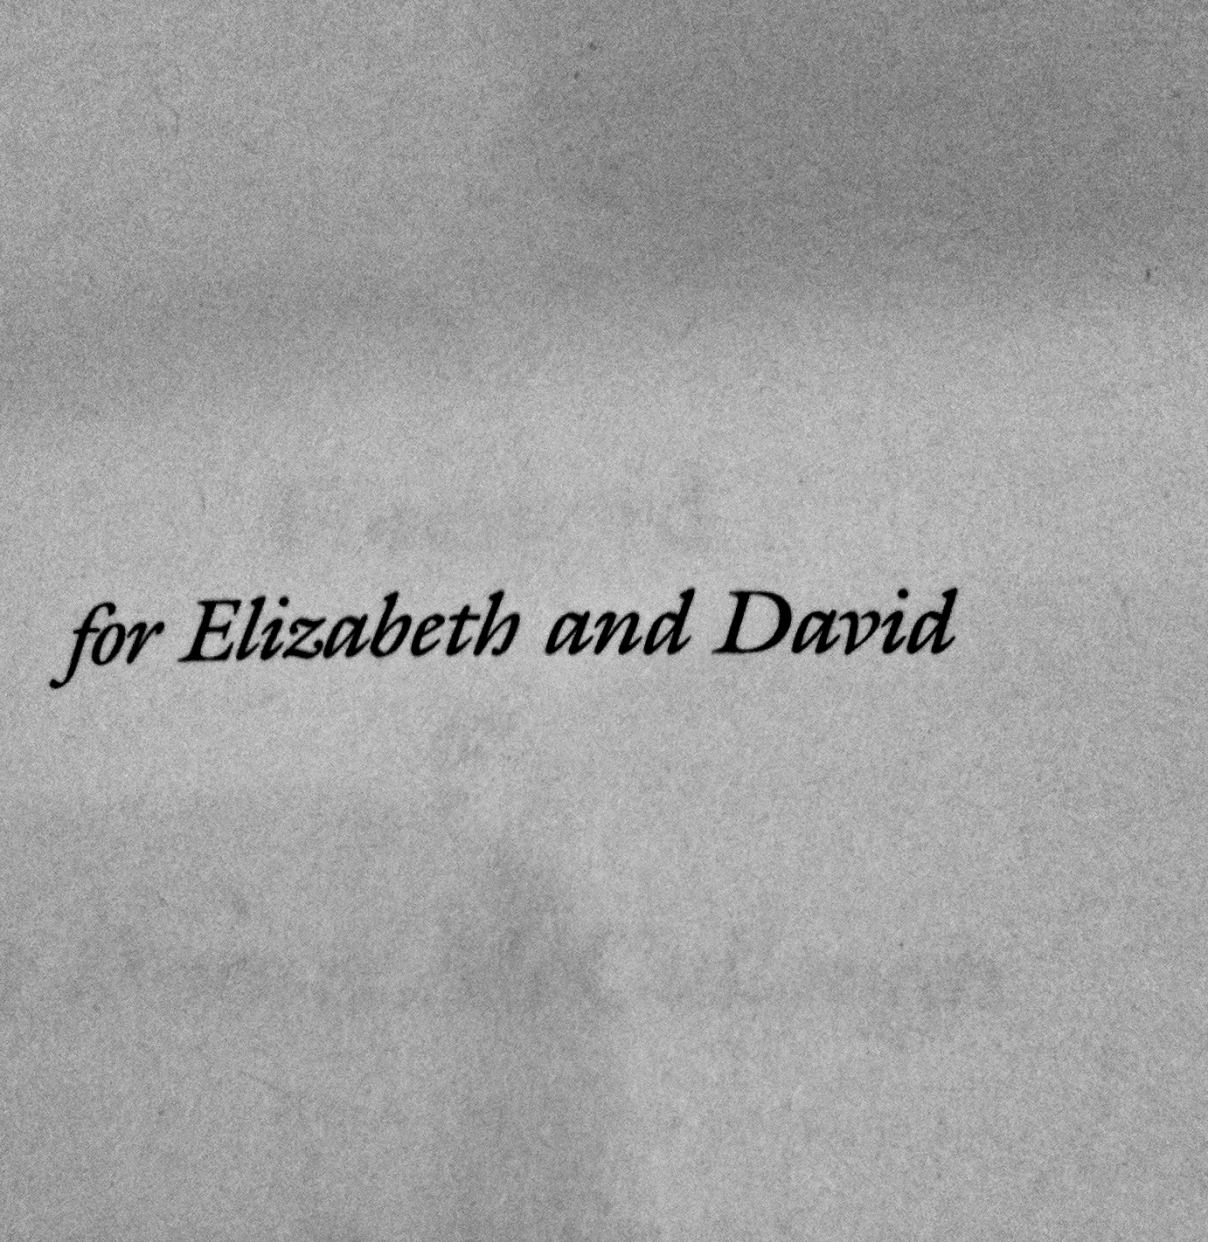 thesis dedication for friends 26 of the greatest book dedications you will ever read to you for reading this post.